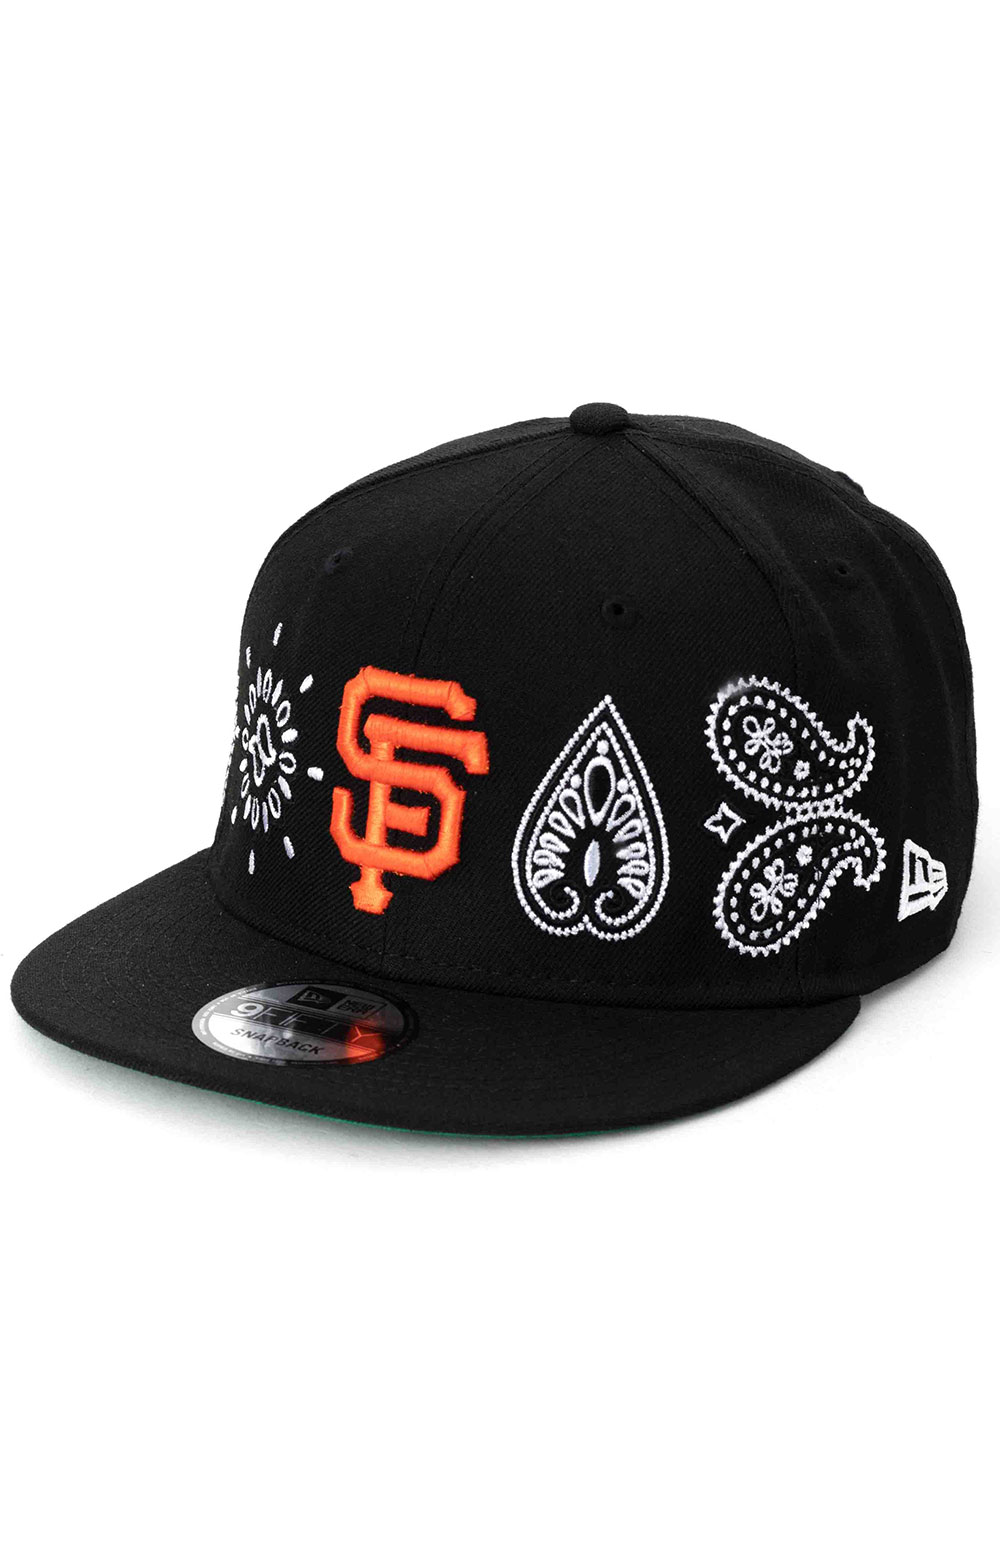 SF Giants Paisley Elements 9Fifty Snap-Back Hat - Black